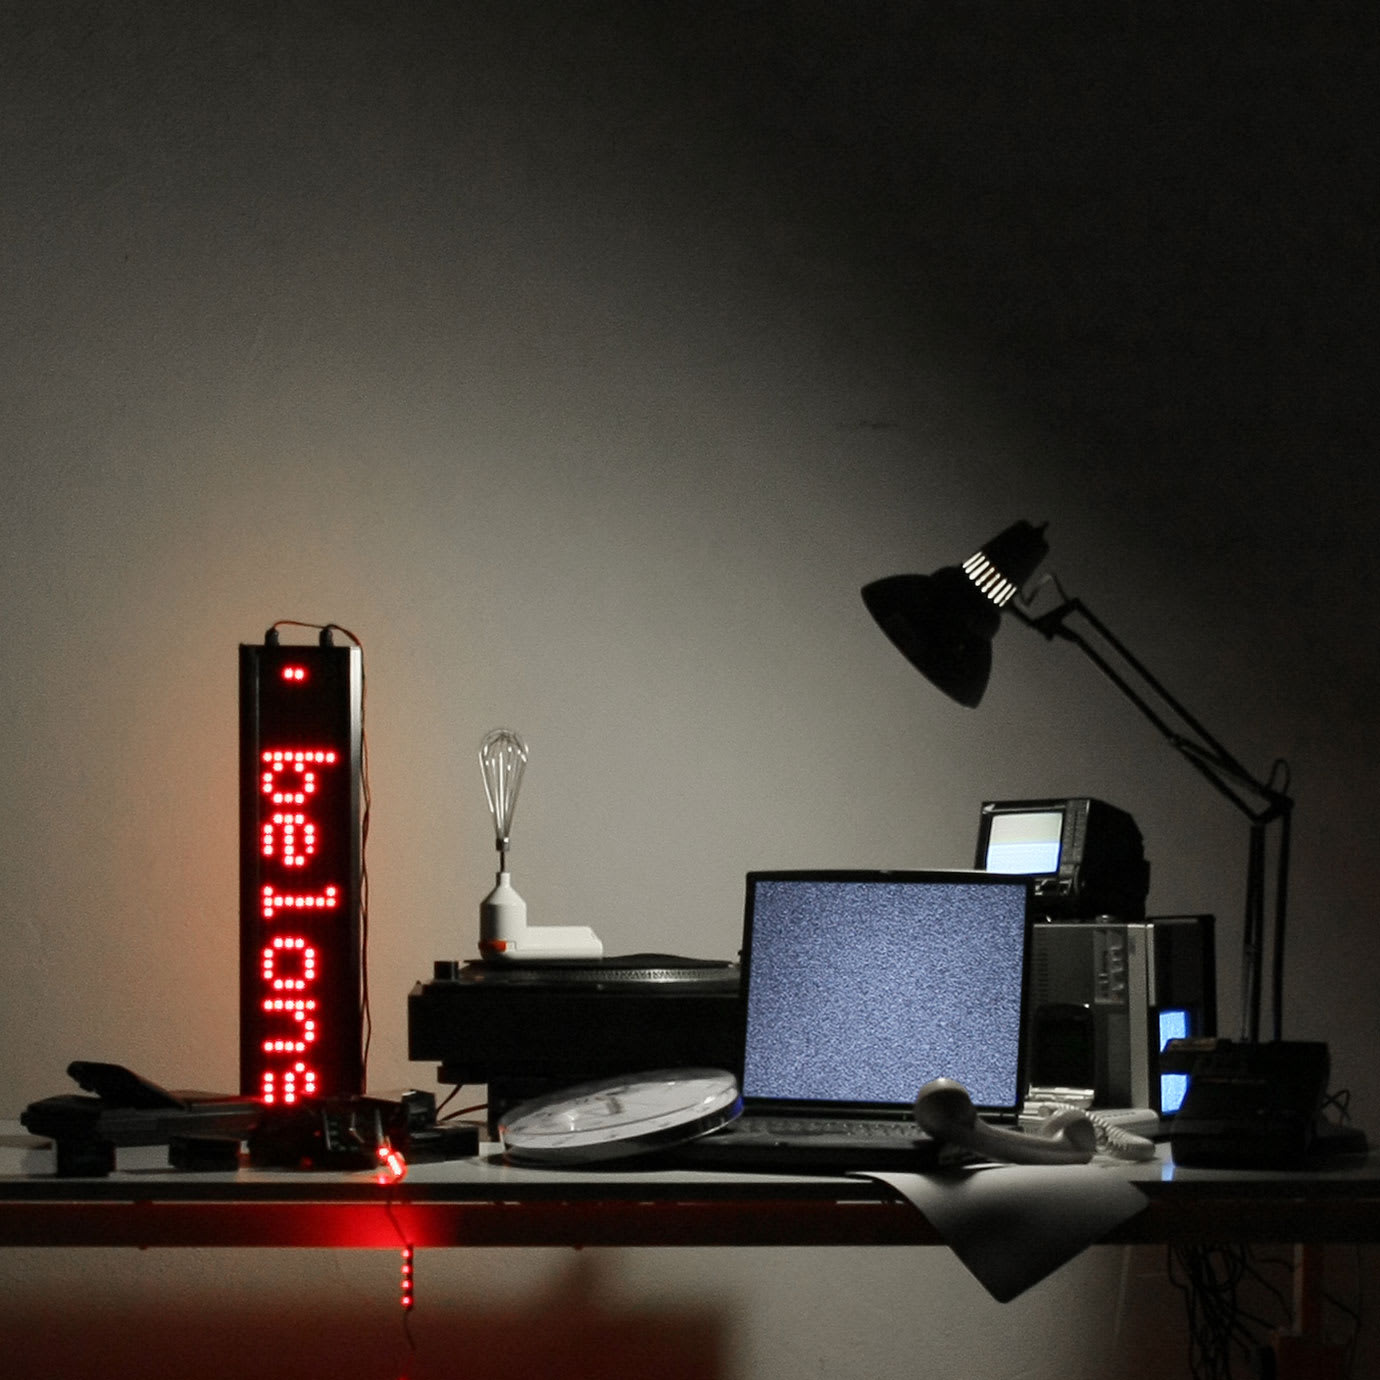 A laptop, lamp and other objects in low light.